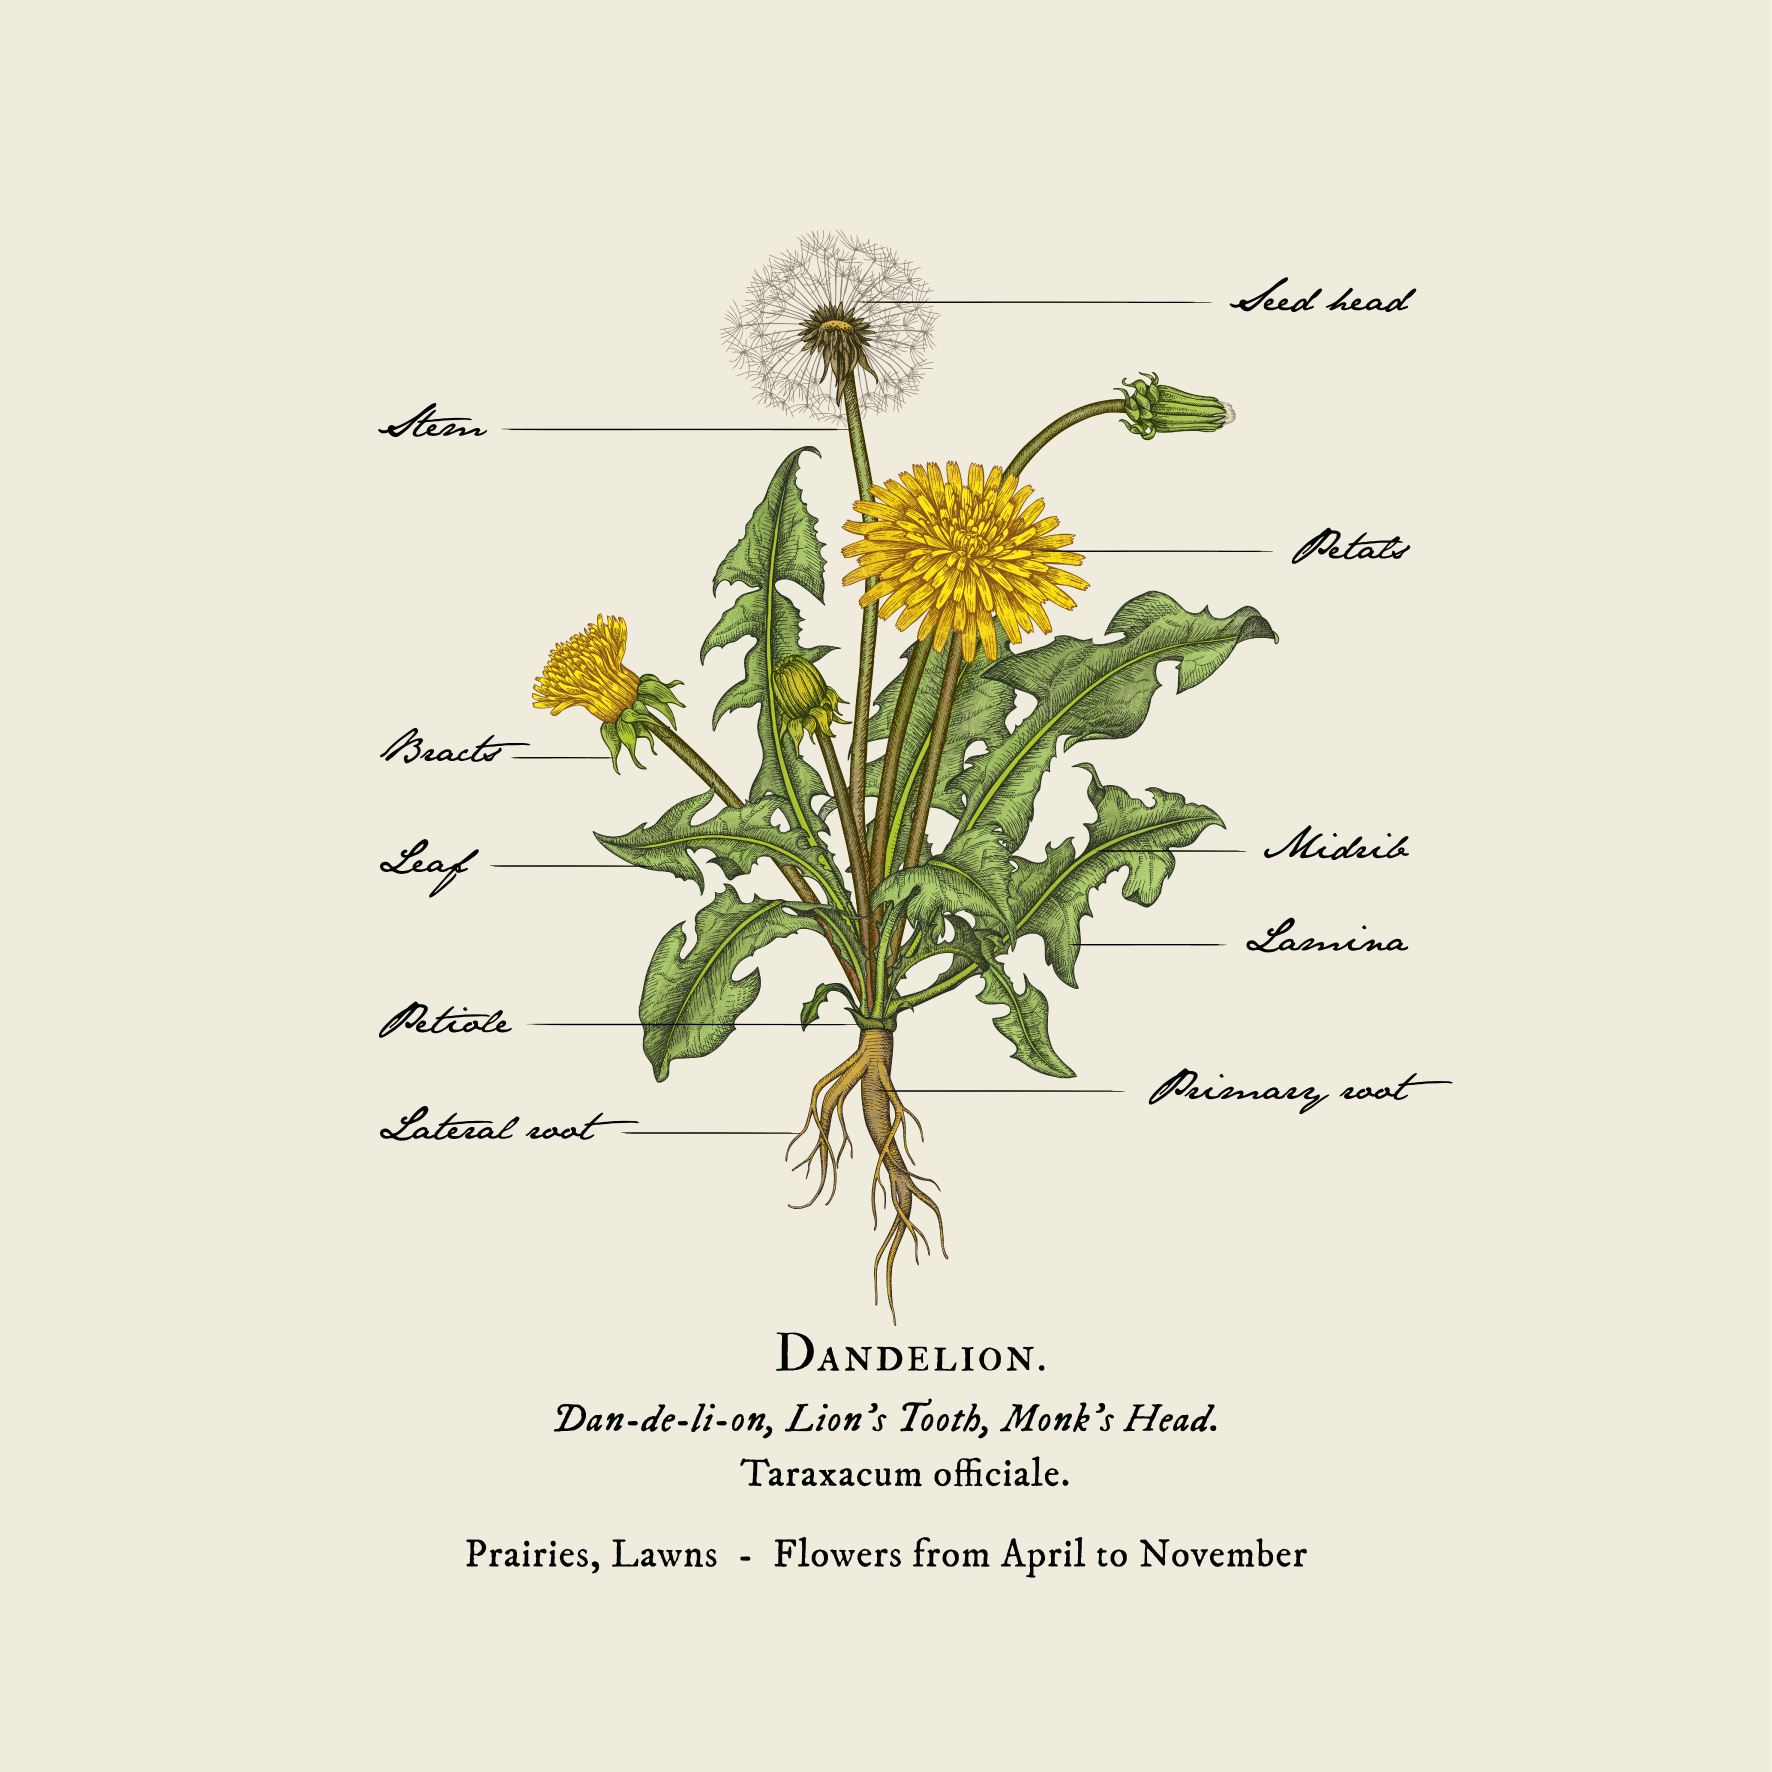 Diagram of dandelion